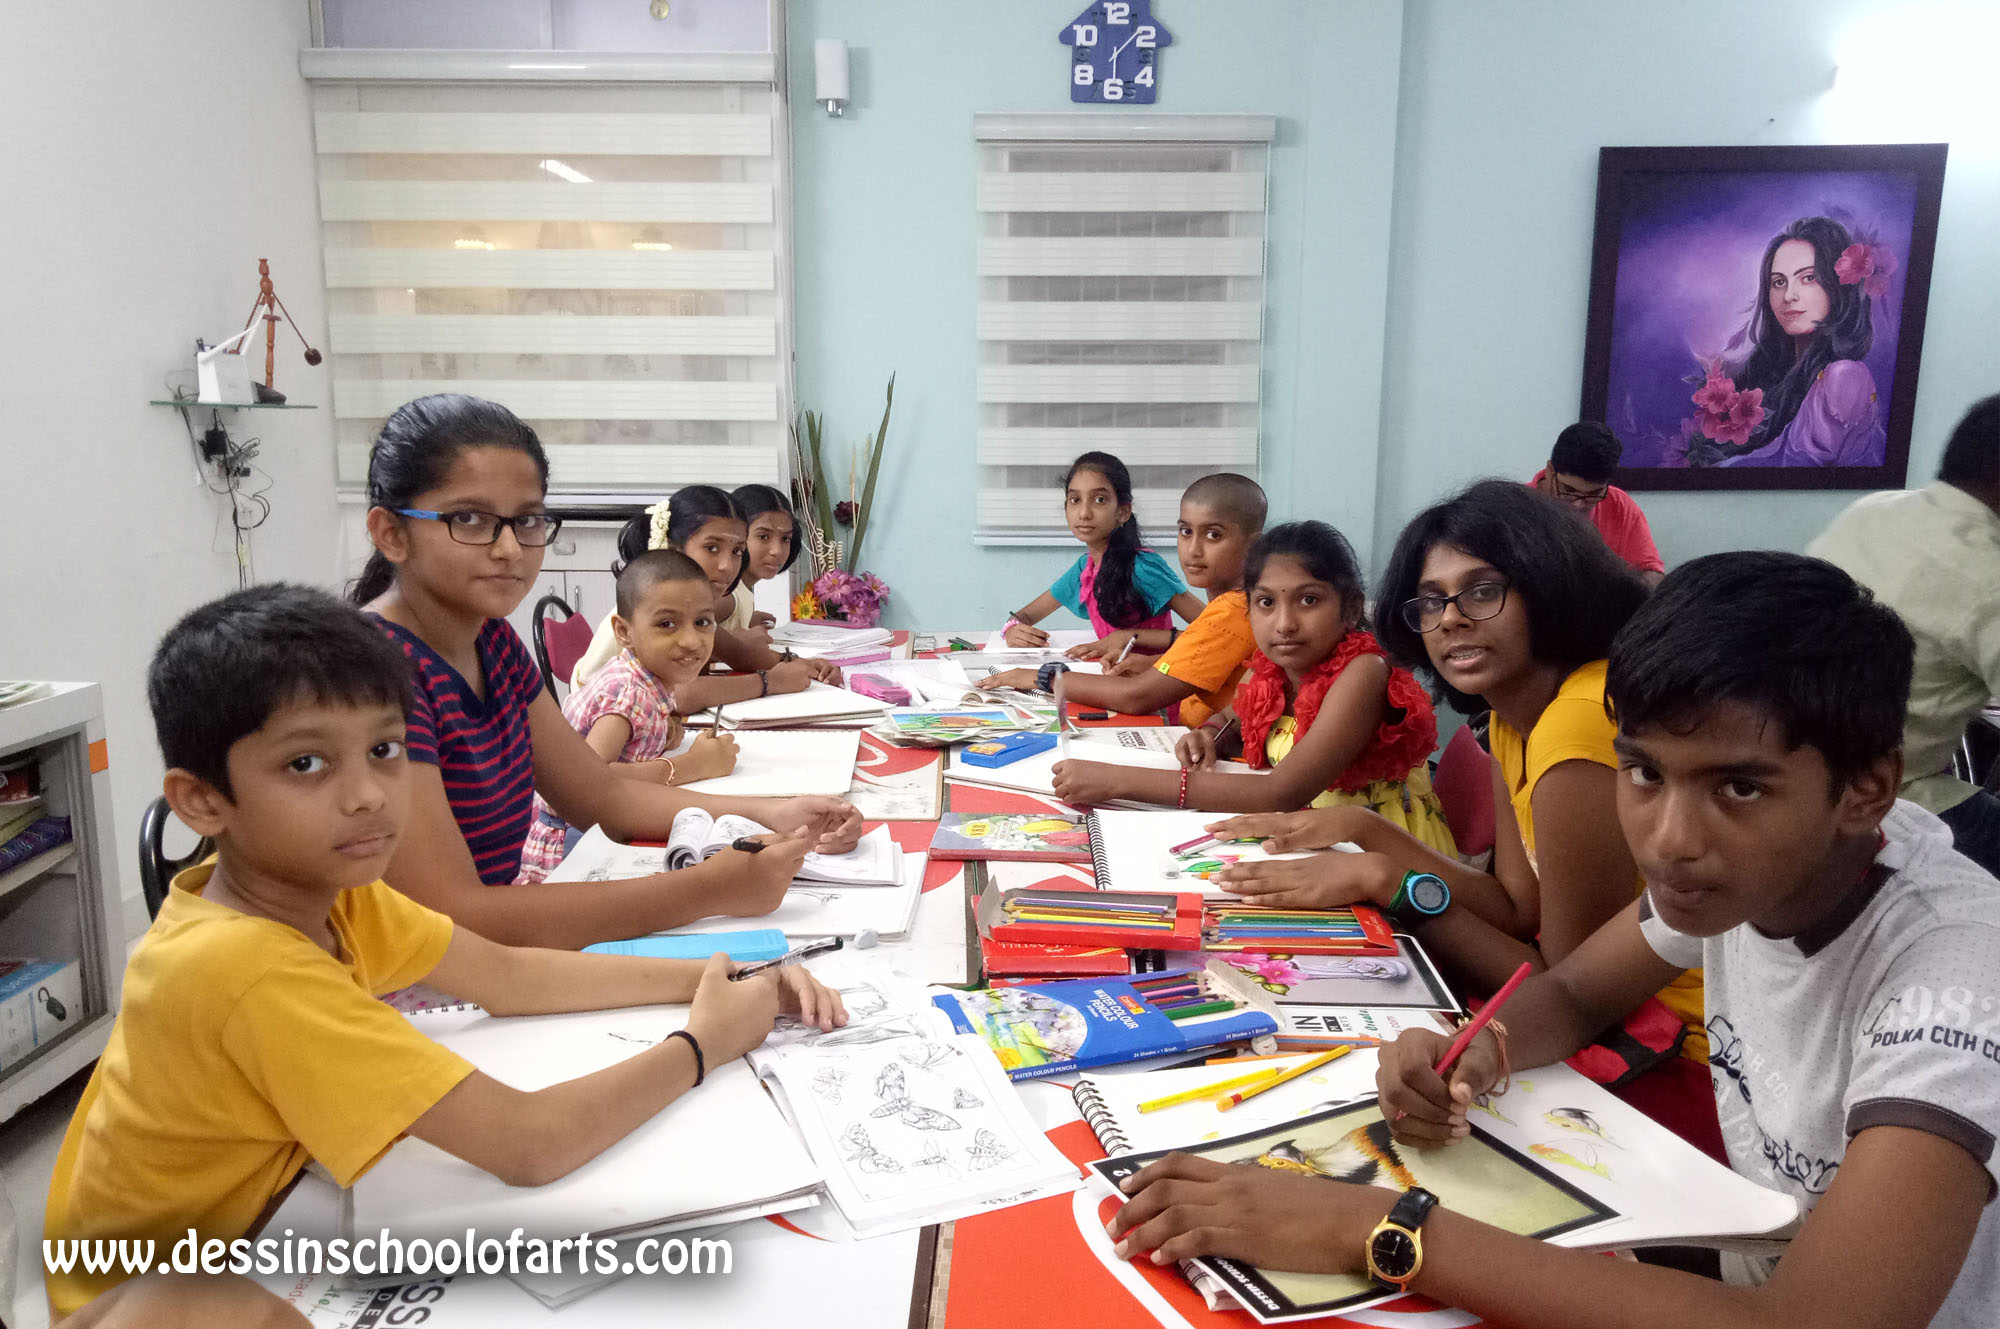 Dessin School of Arts, Dessin School of Arts, part time fine arts courses classes in Anna Nagar East L Block Class Room Photo 2